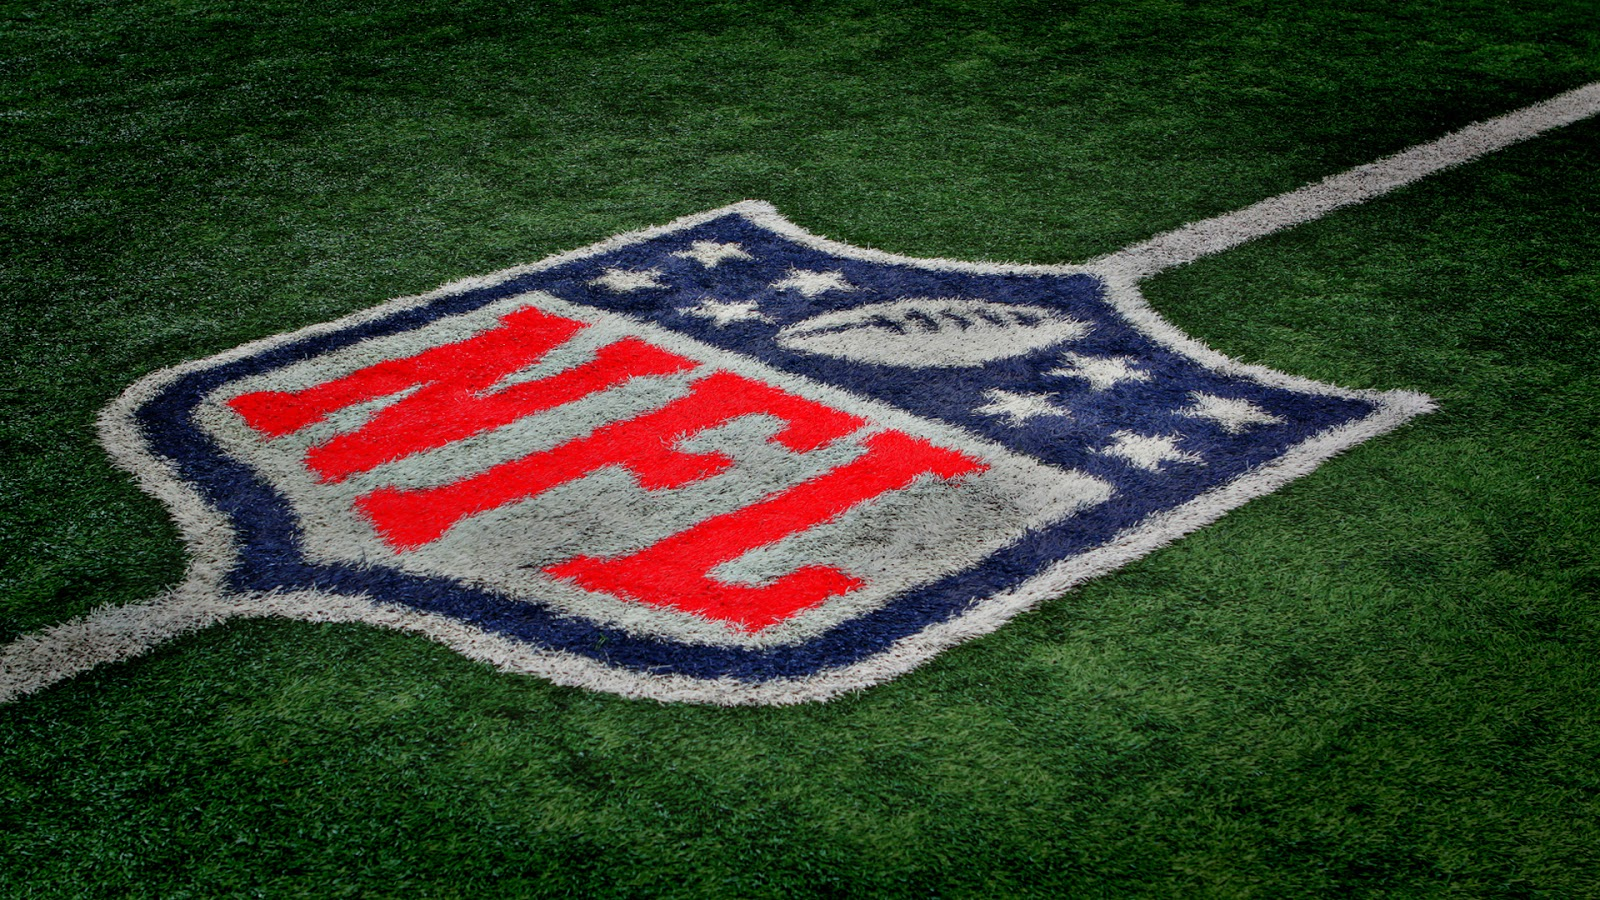 NFL 2012   Download NFL Football HD Wallpapers for iPad and Nexus 1600x900